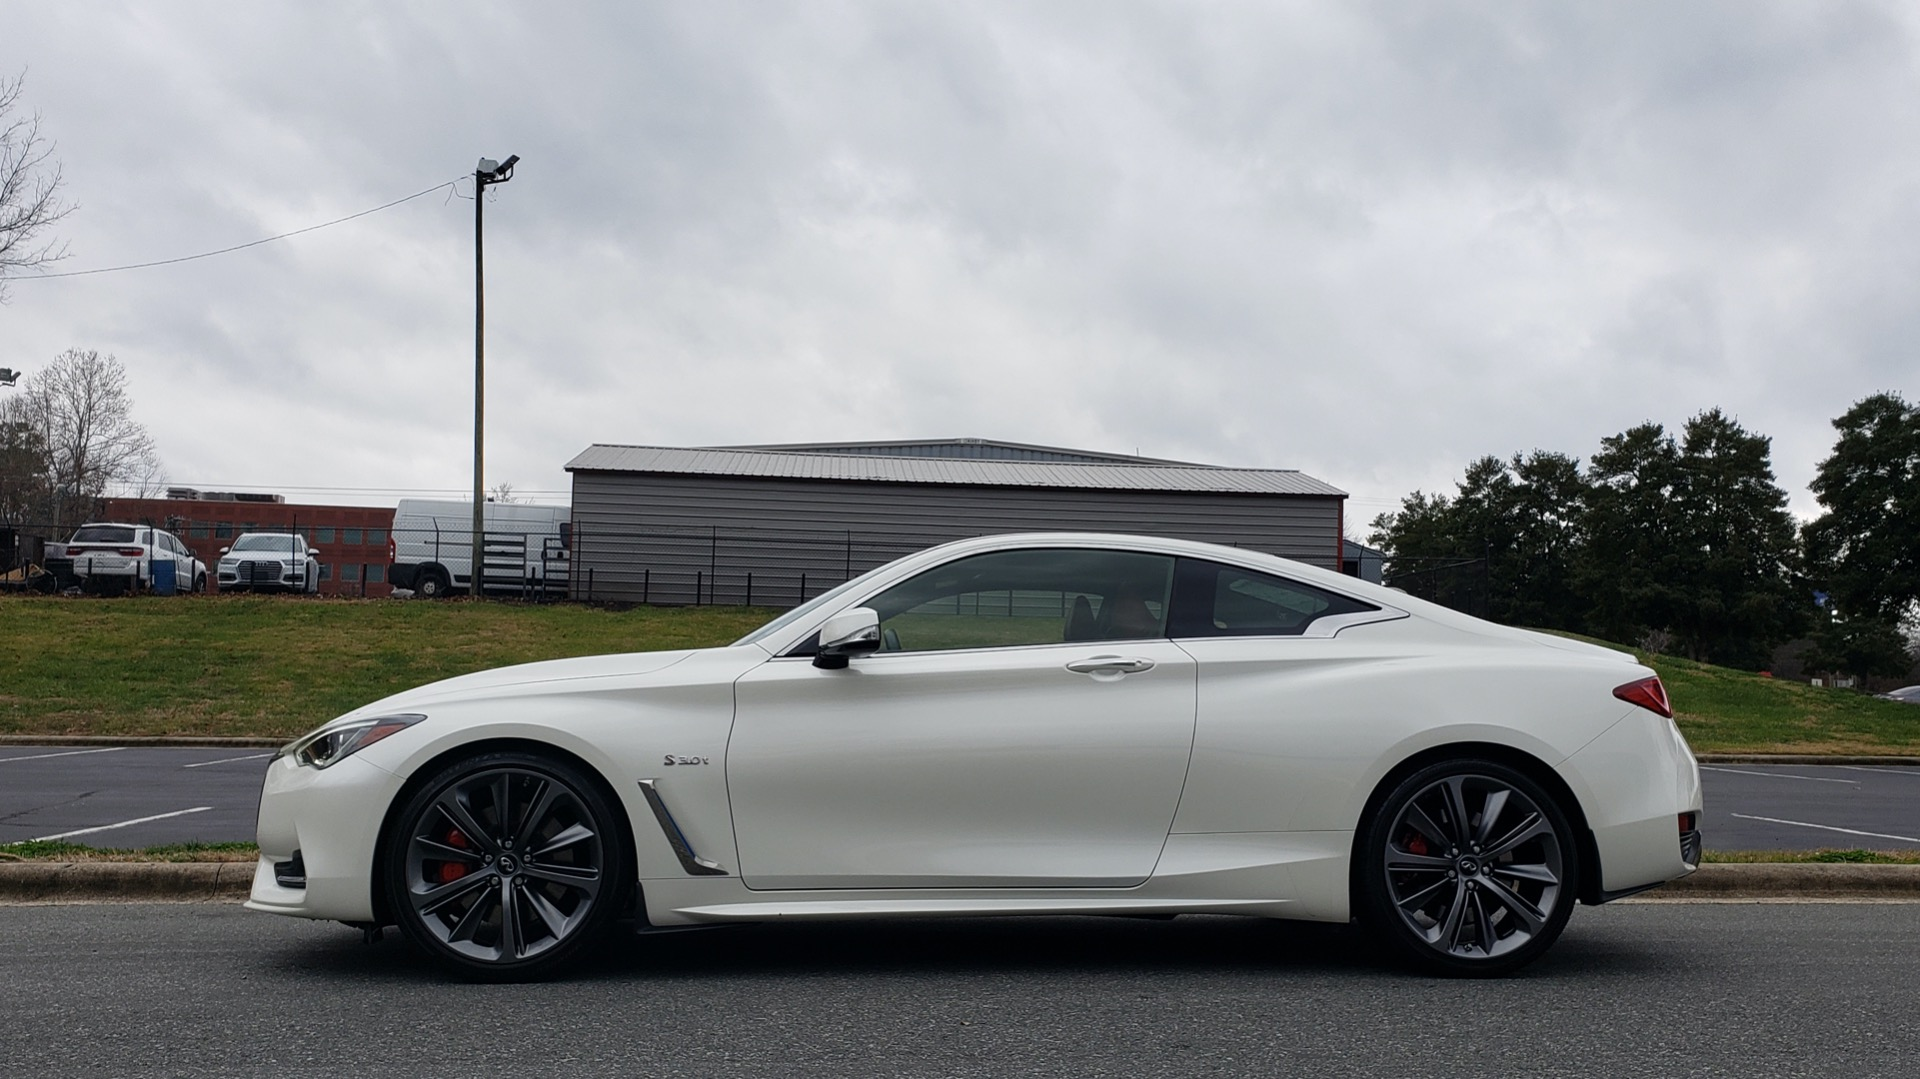 Used 2018 Infiniti Q60 RED SPORT 400 / SENSORY PKG / SUNROOF / NAV / REARVIEW for sale Sold at Formula Imports in Charlotte NC 28227 2